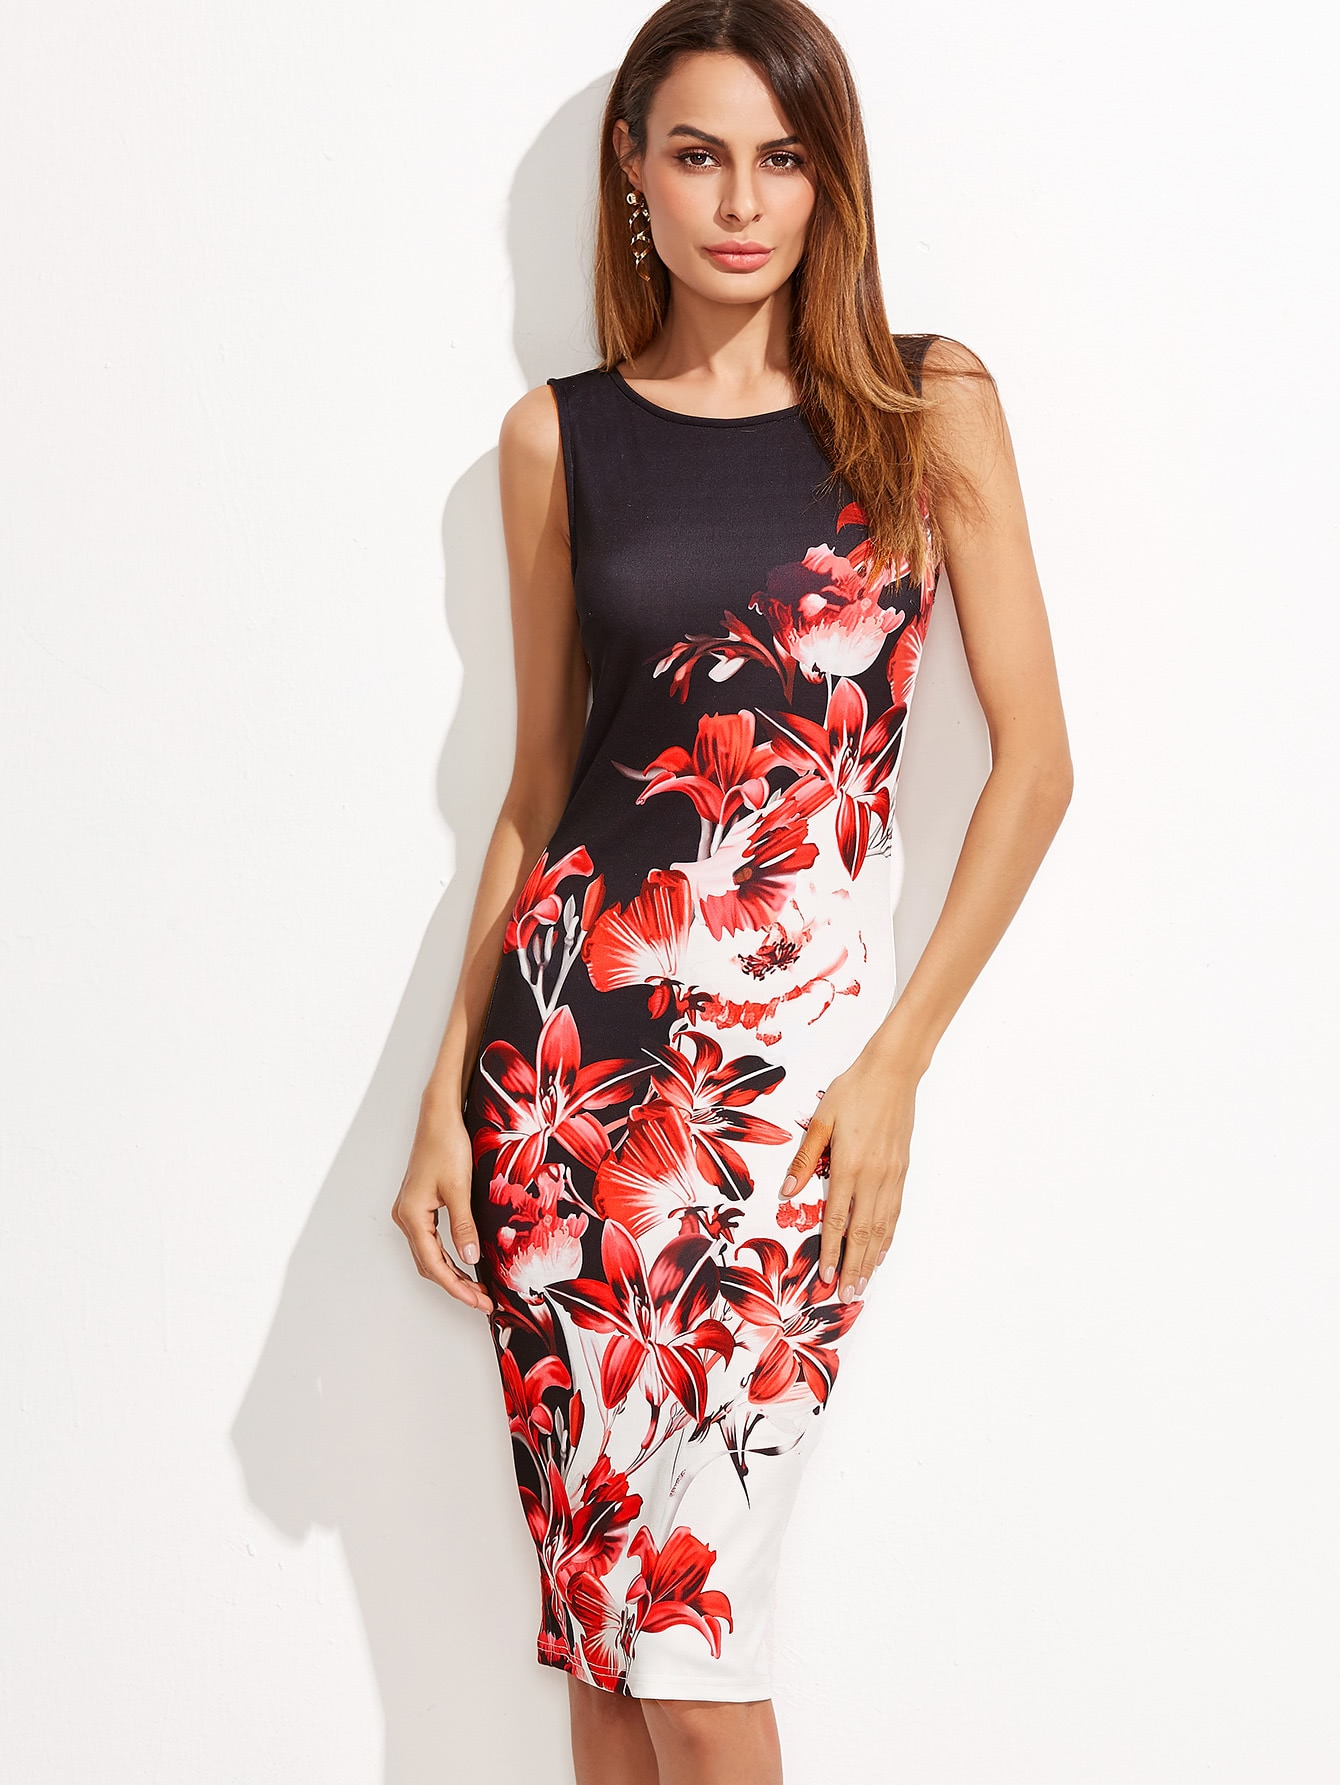 Multicolor Flower Print Sleeveless Pencil Dress | SHEIN IN